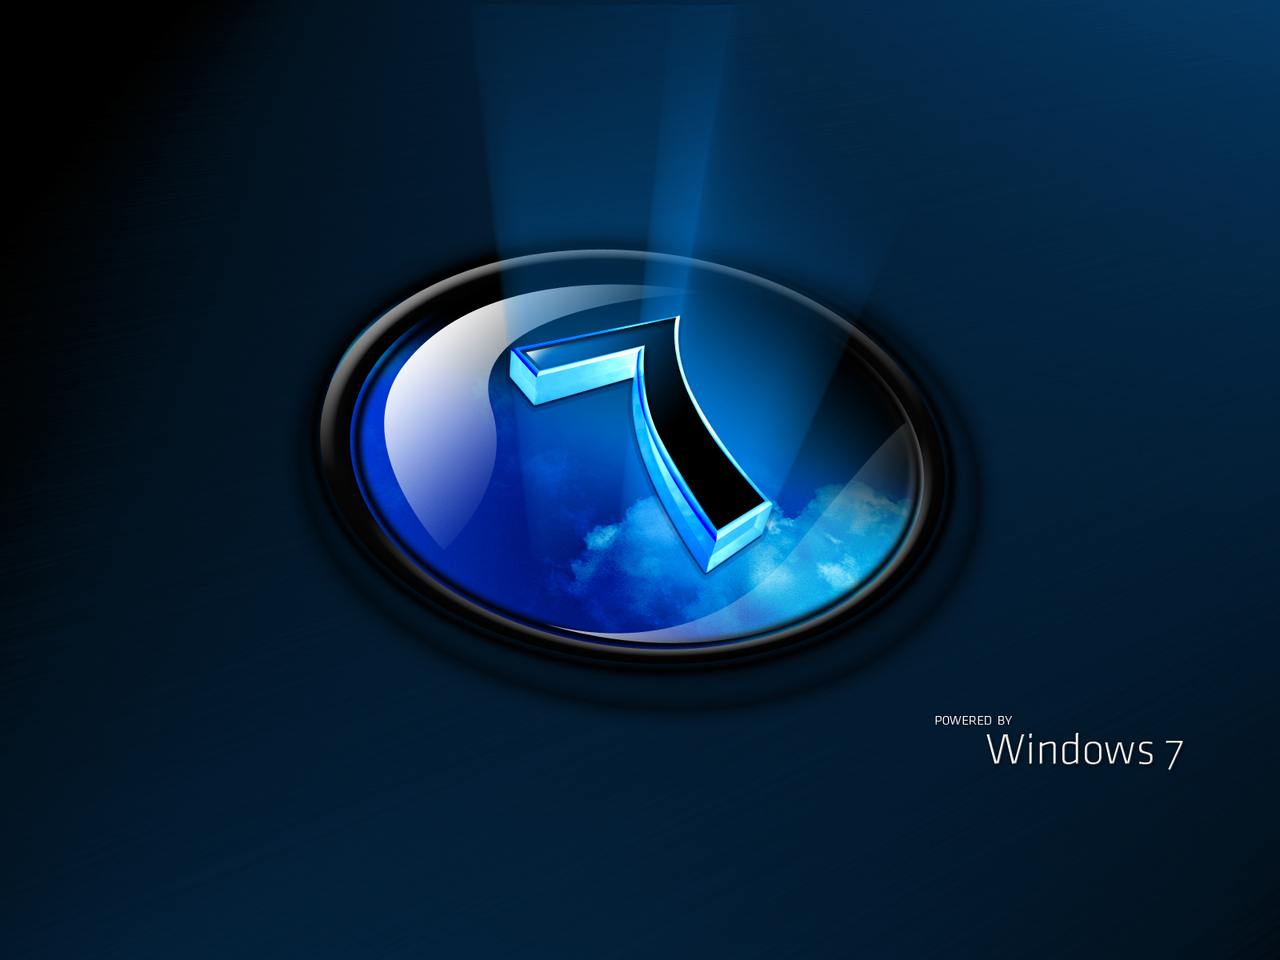 hd wallpapers for windows 7